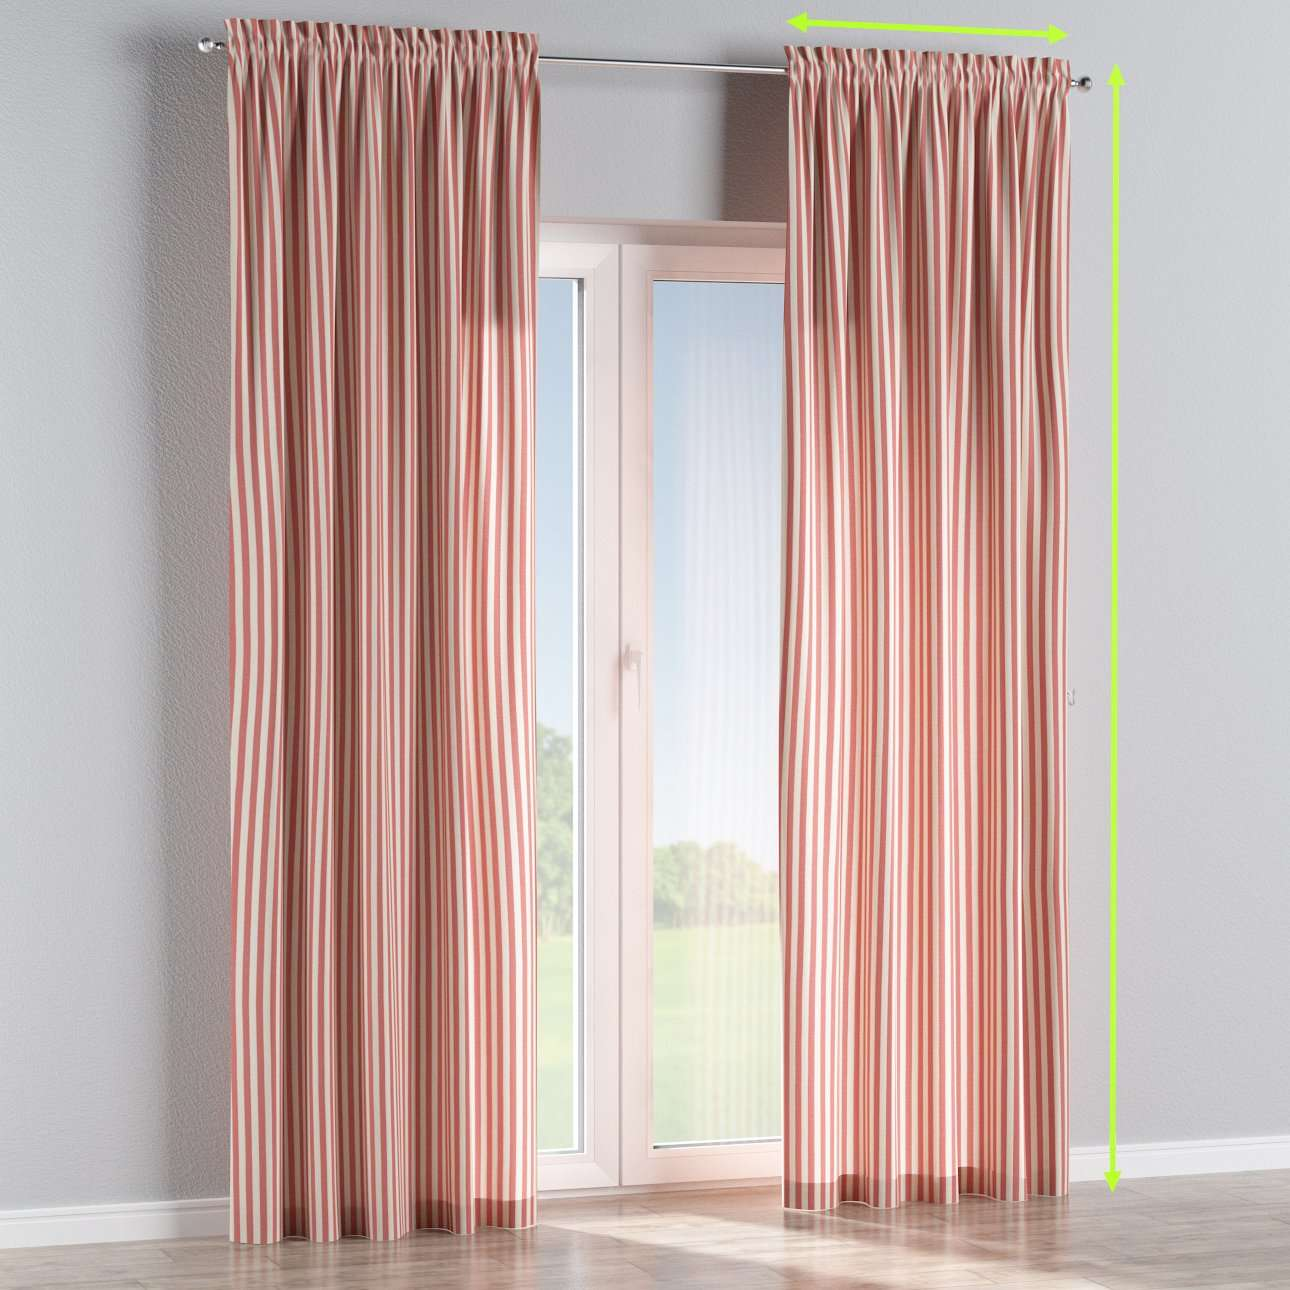 Slot and frill curtains in collection Quadro, fabric: 136-17